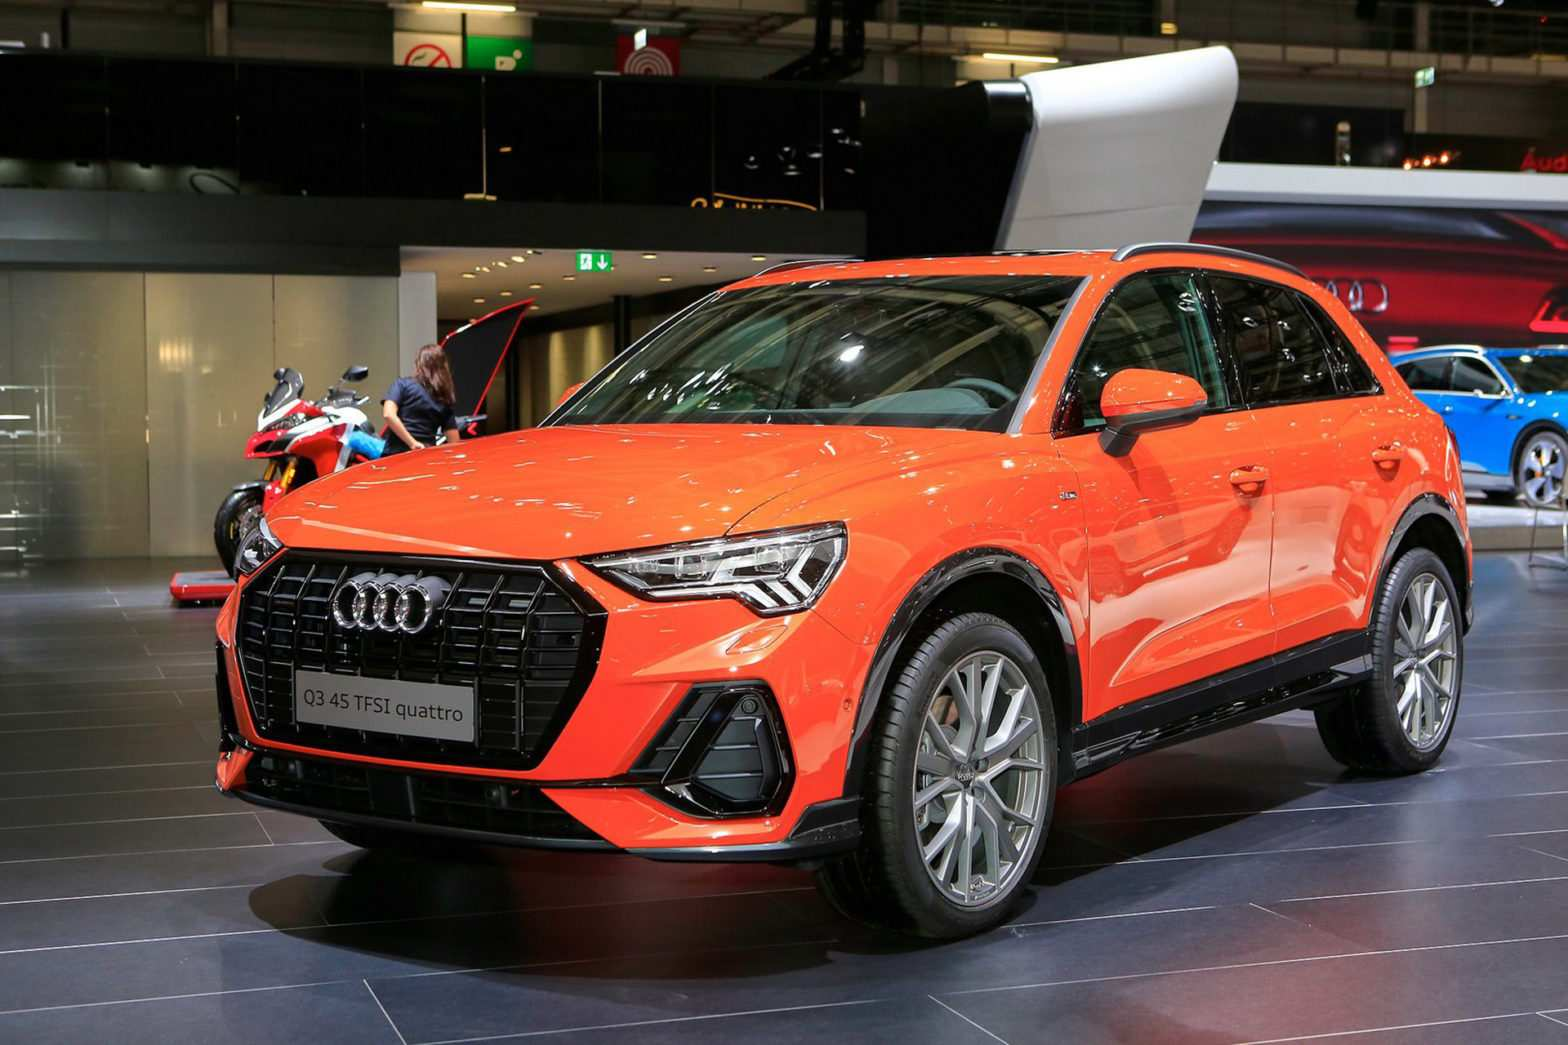 89 The Best Audi Q3 2020 Release Date And Concept